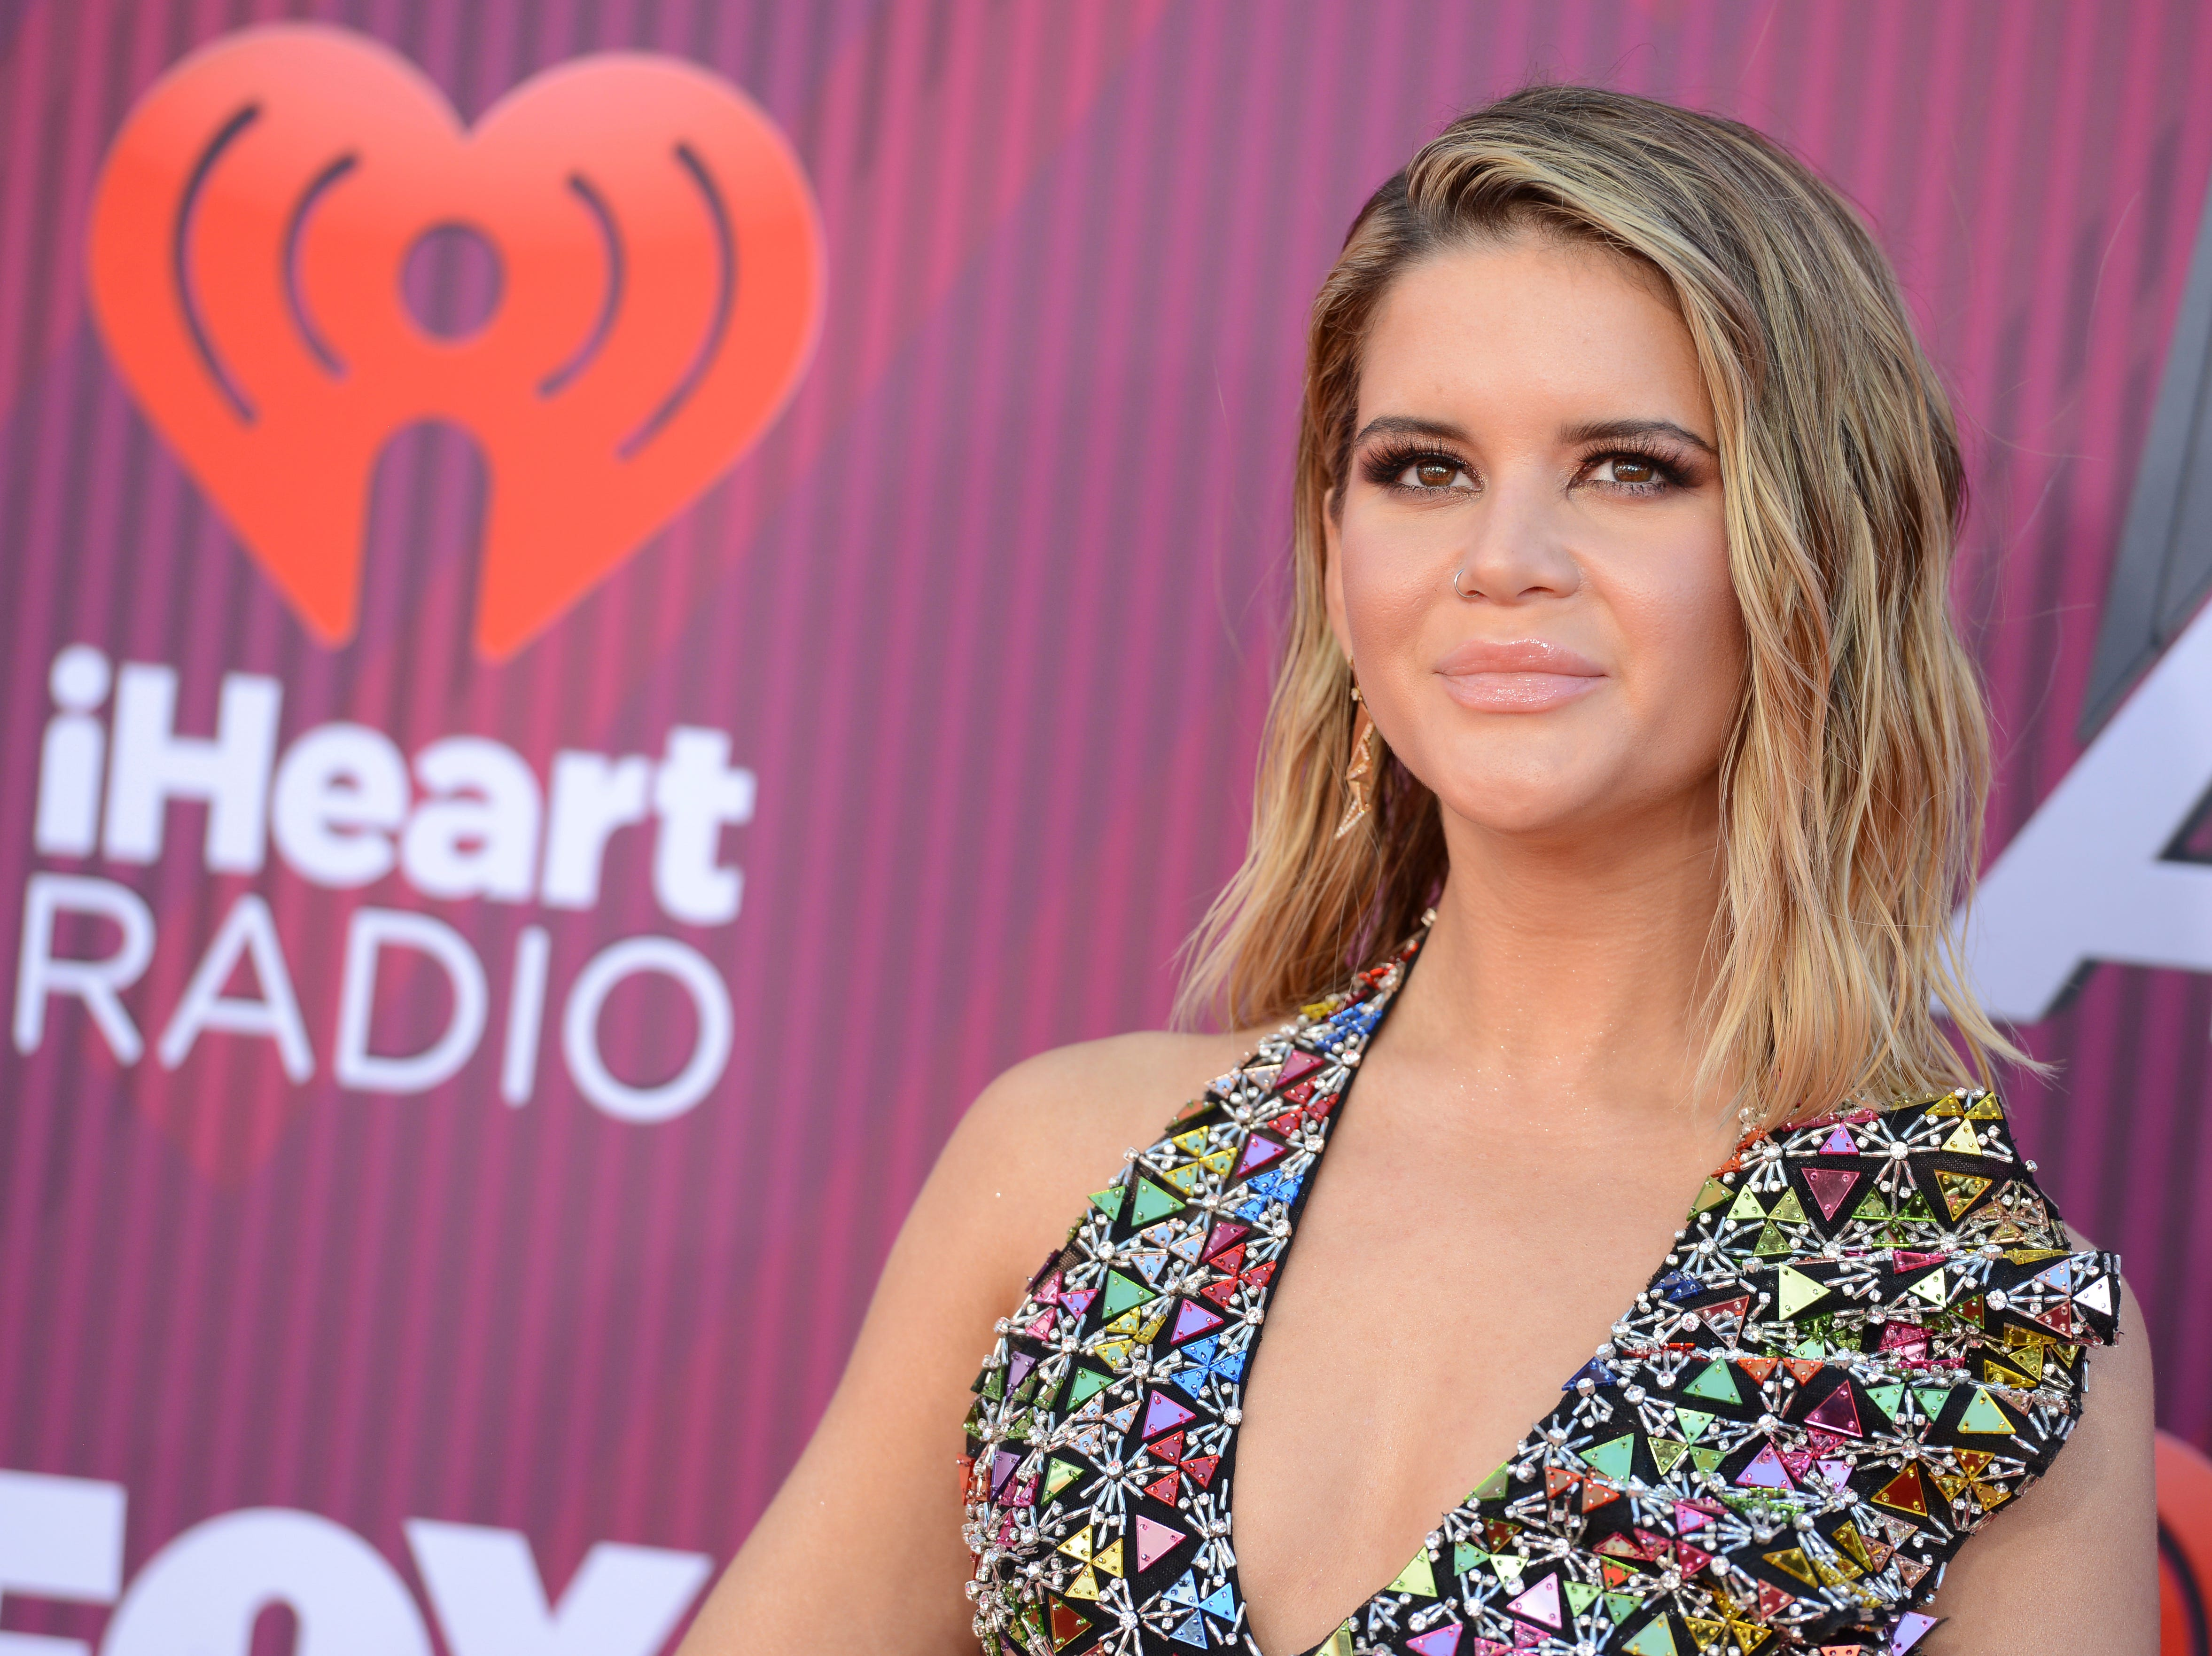 Maren Morris arrives at the iHeartRadio Music Awards.